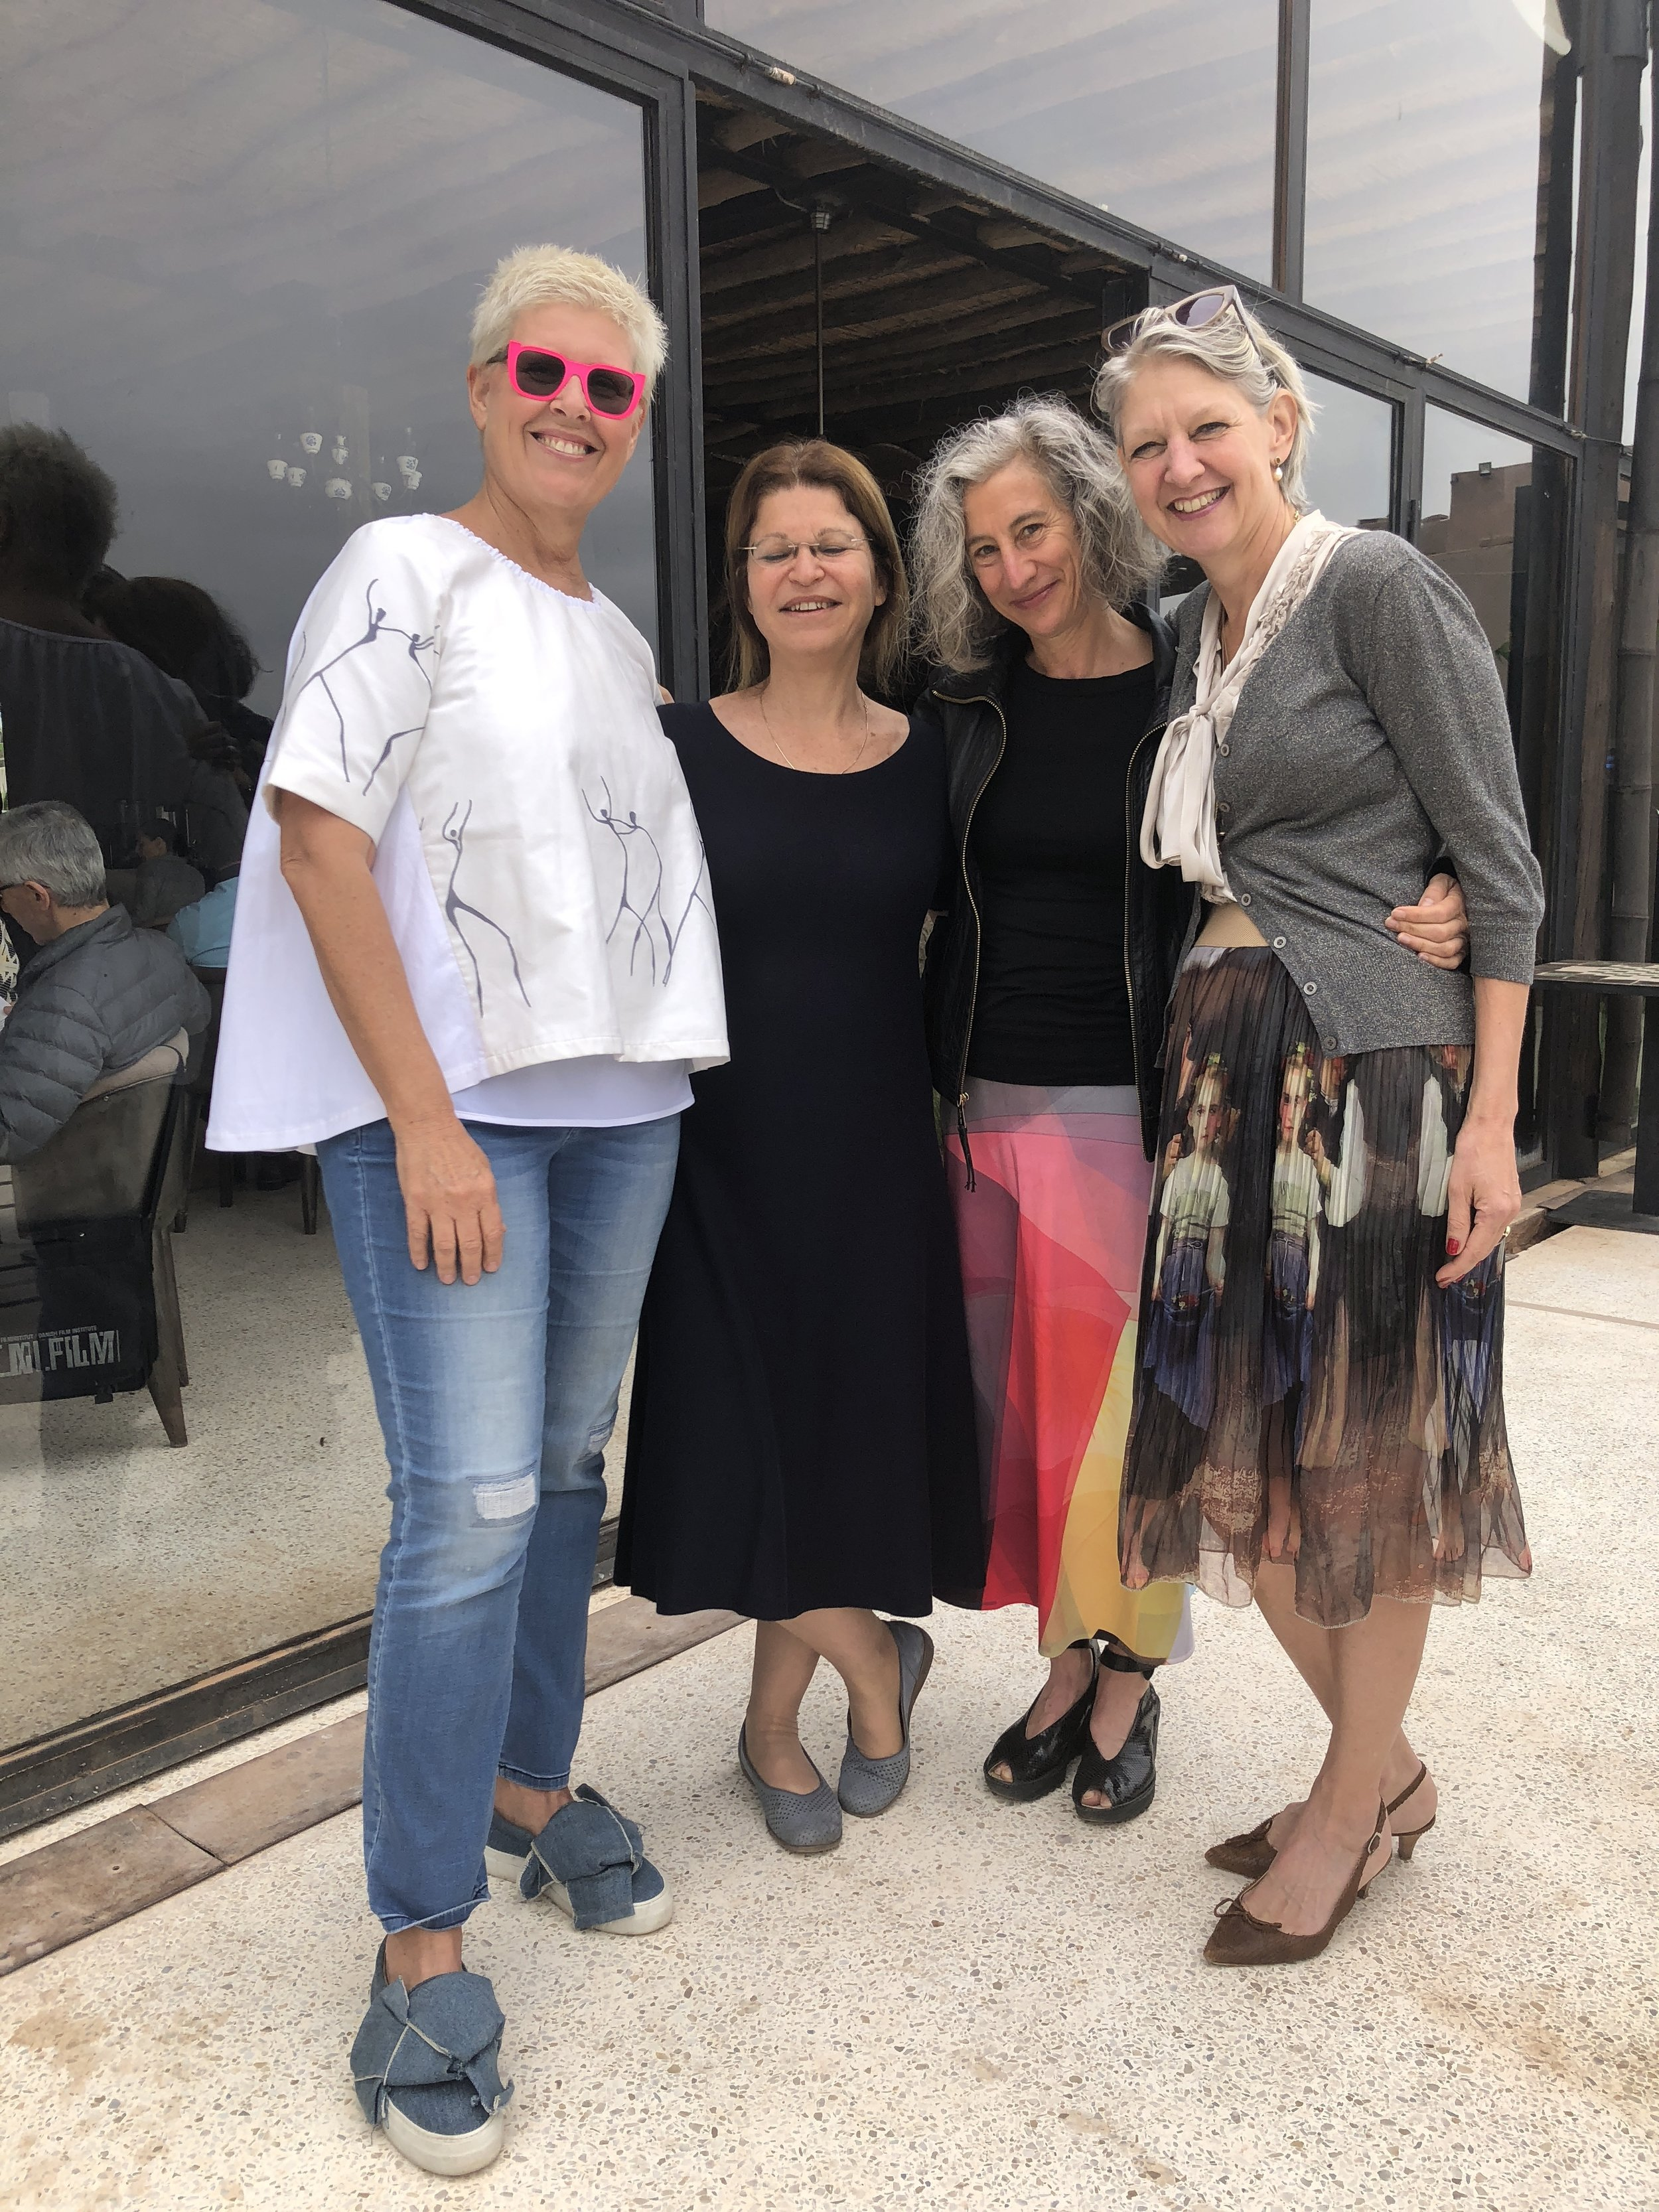 L-R: Tzili Charney, Dorit Inbar, NFCT Executive Director, Bruni Burres-producer & senior consultant, sundance institute, USA, Margje de Koning, Chief Commissioning Editor of documentaries EO, JDocs & IKONdocs